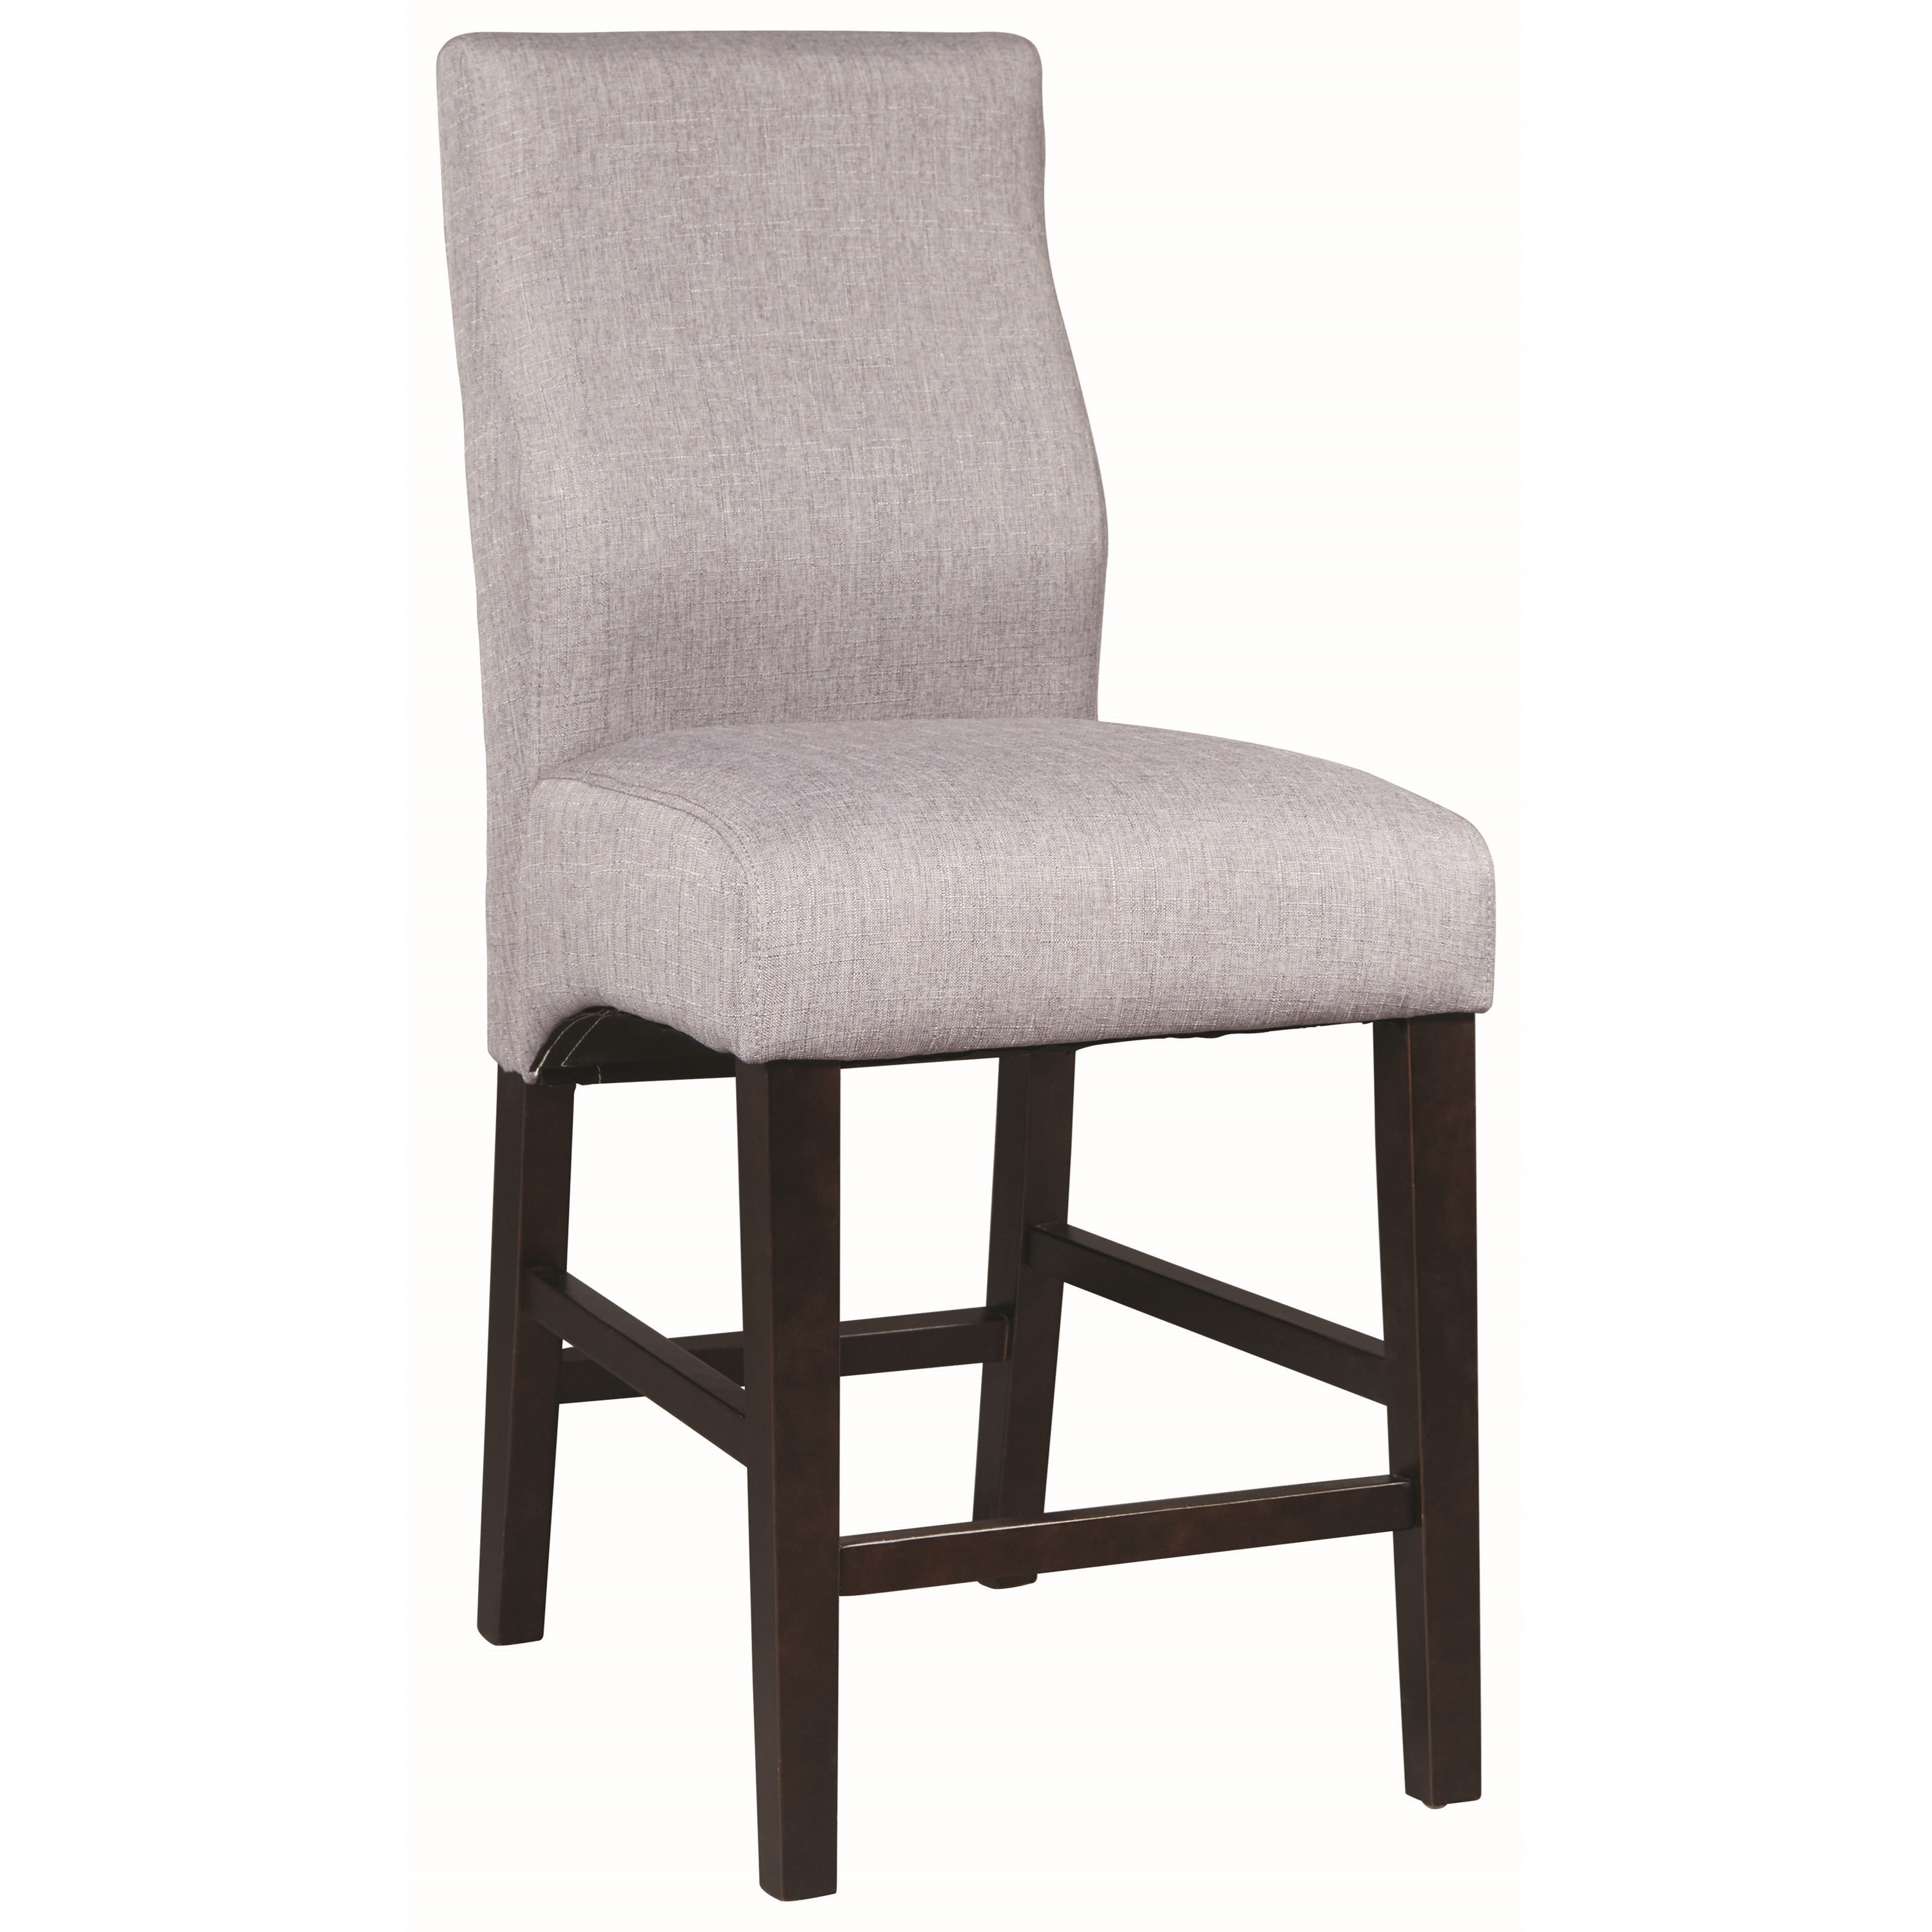 Coaster Dining Chairs and Bar Stools Counter Height Stool - Item Number: 102855